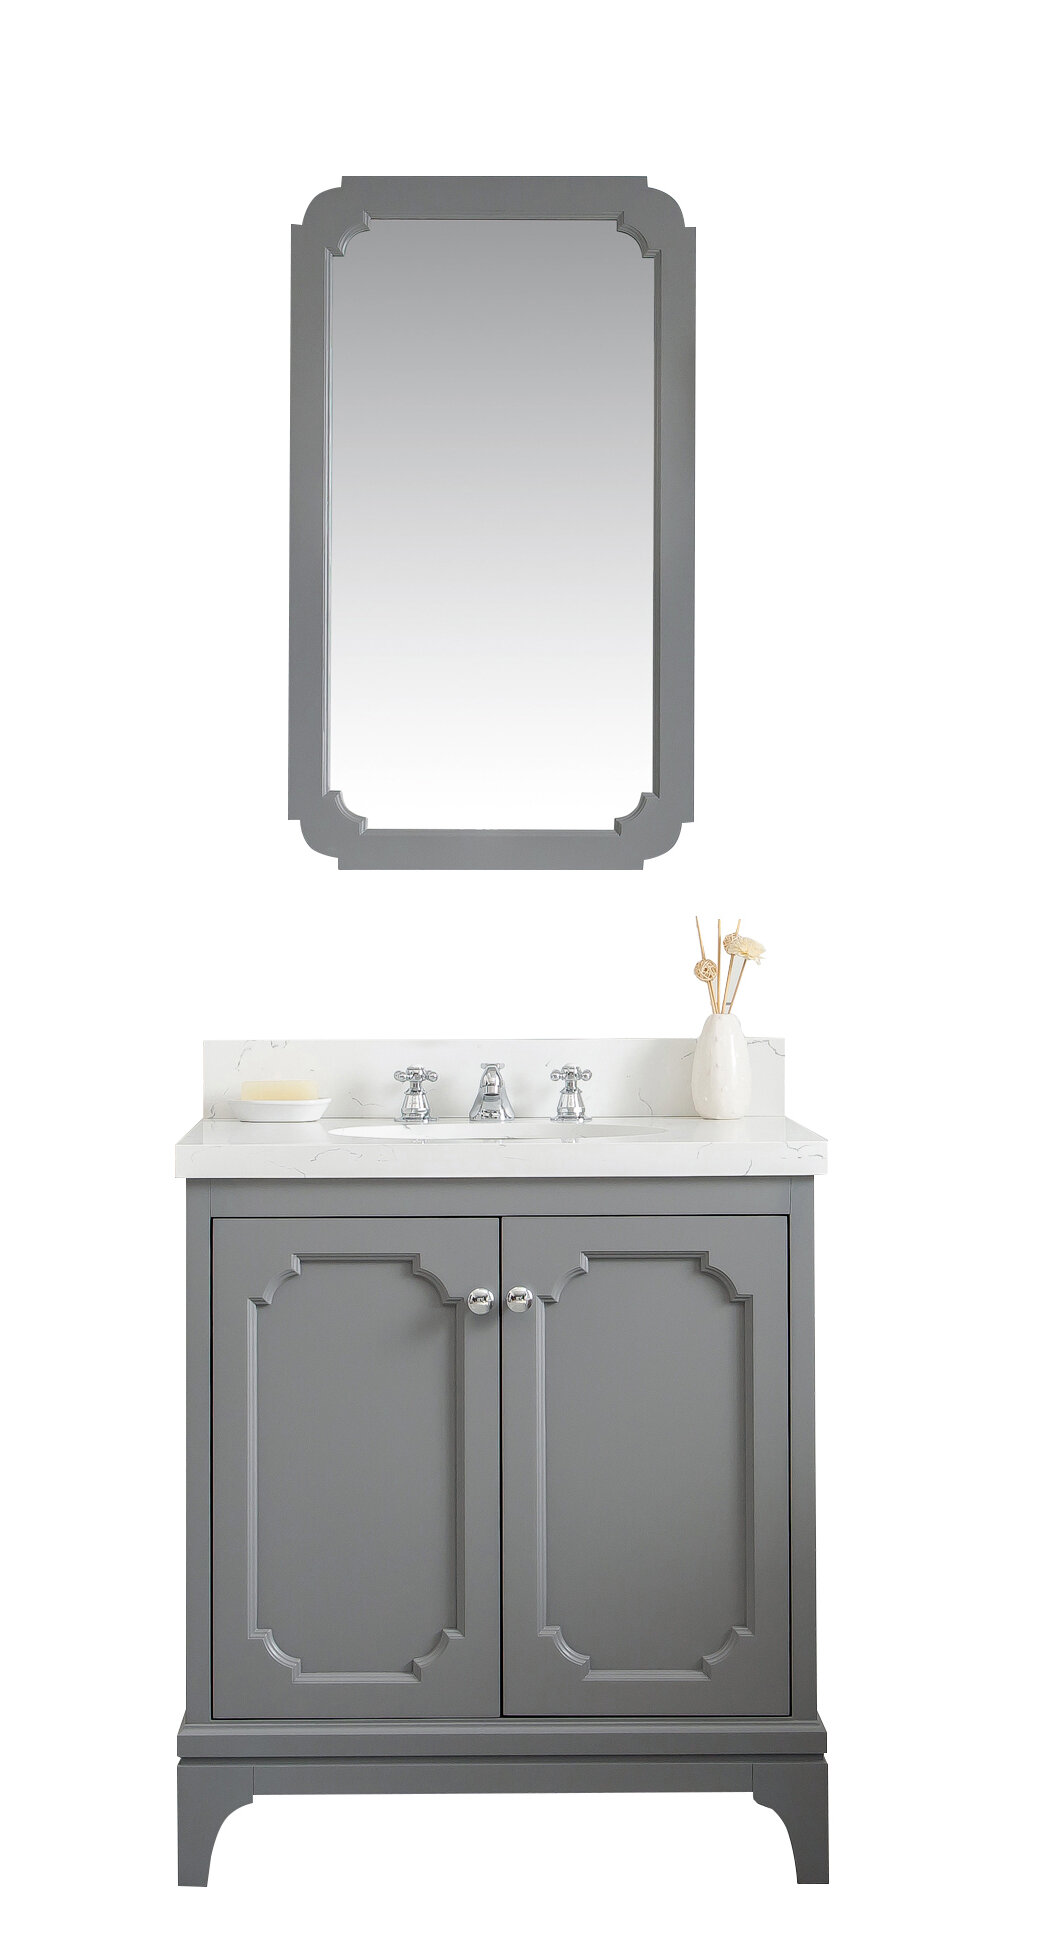 "Ebay Bathroom Vanity With Sink: Alcott Hill Kylan 30"" Single Bathroom Vanity Set"